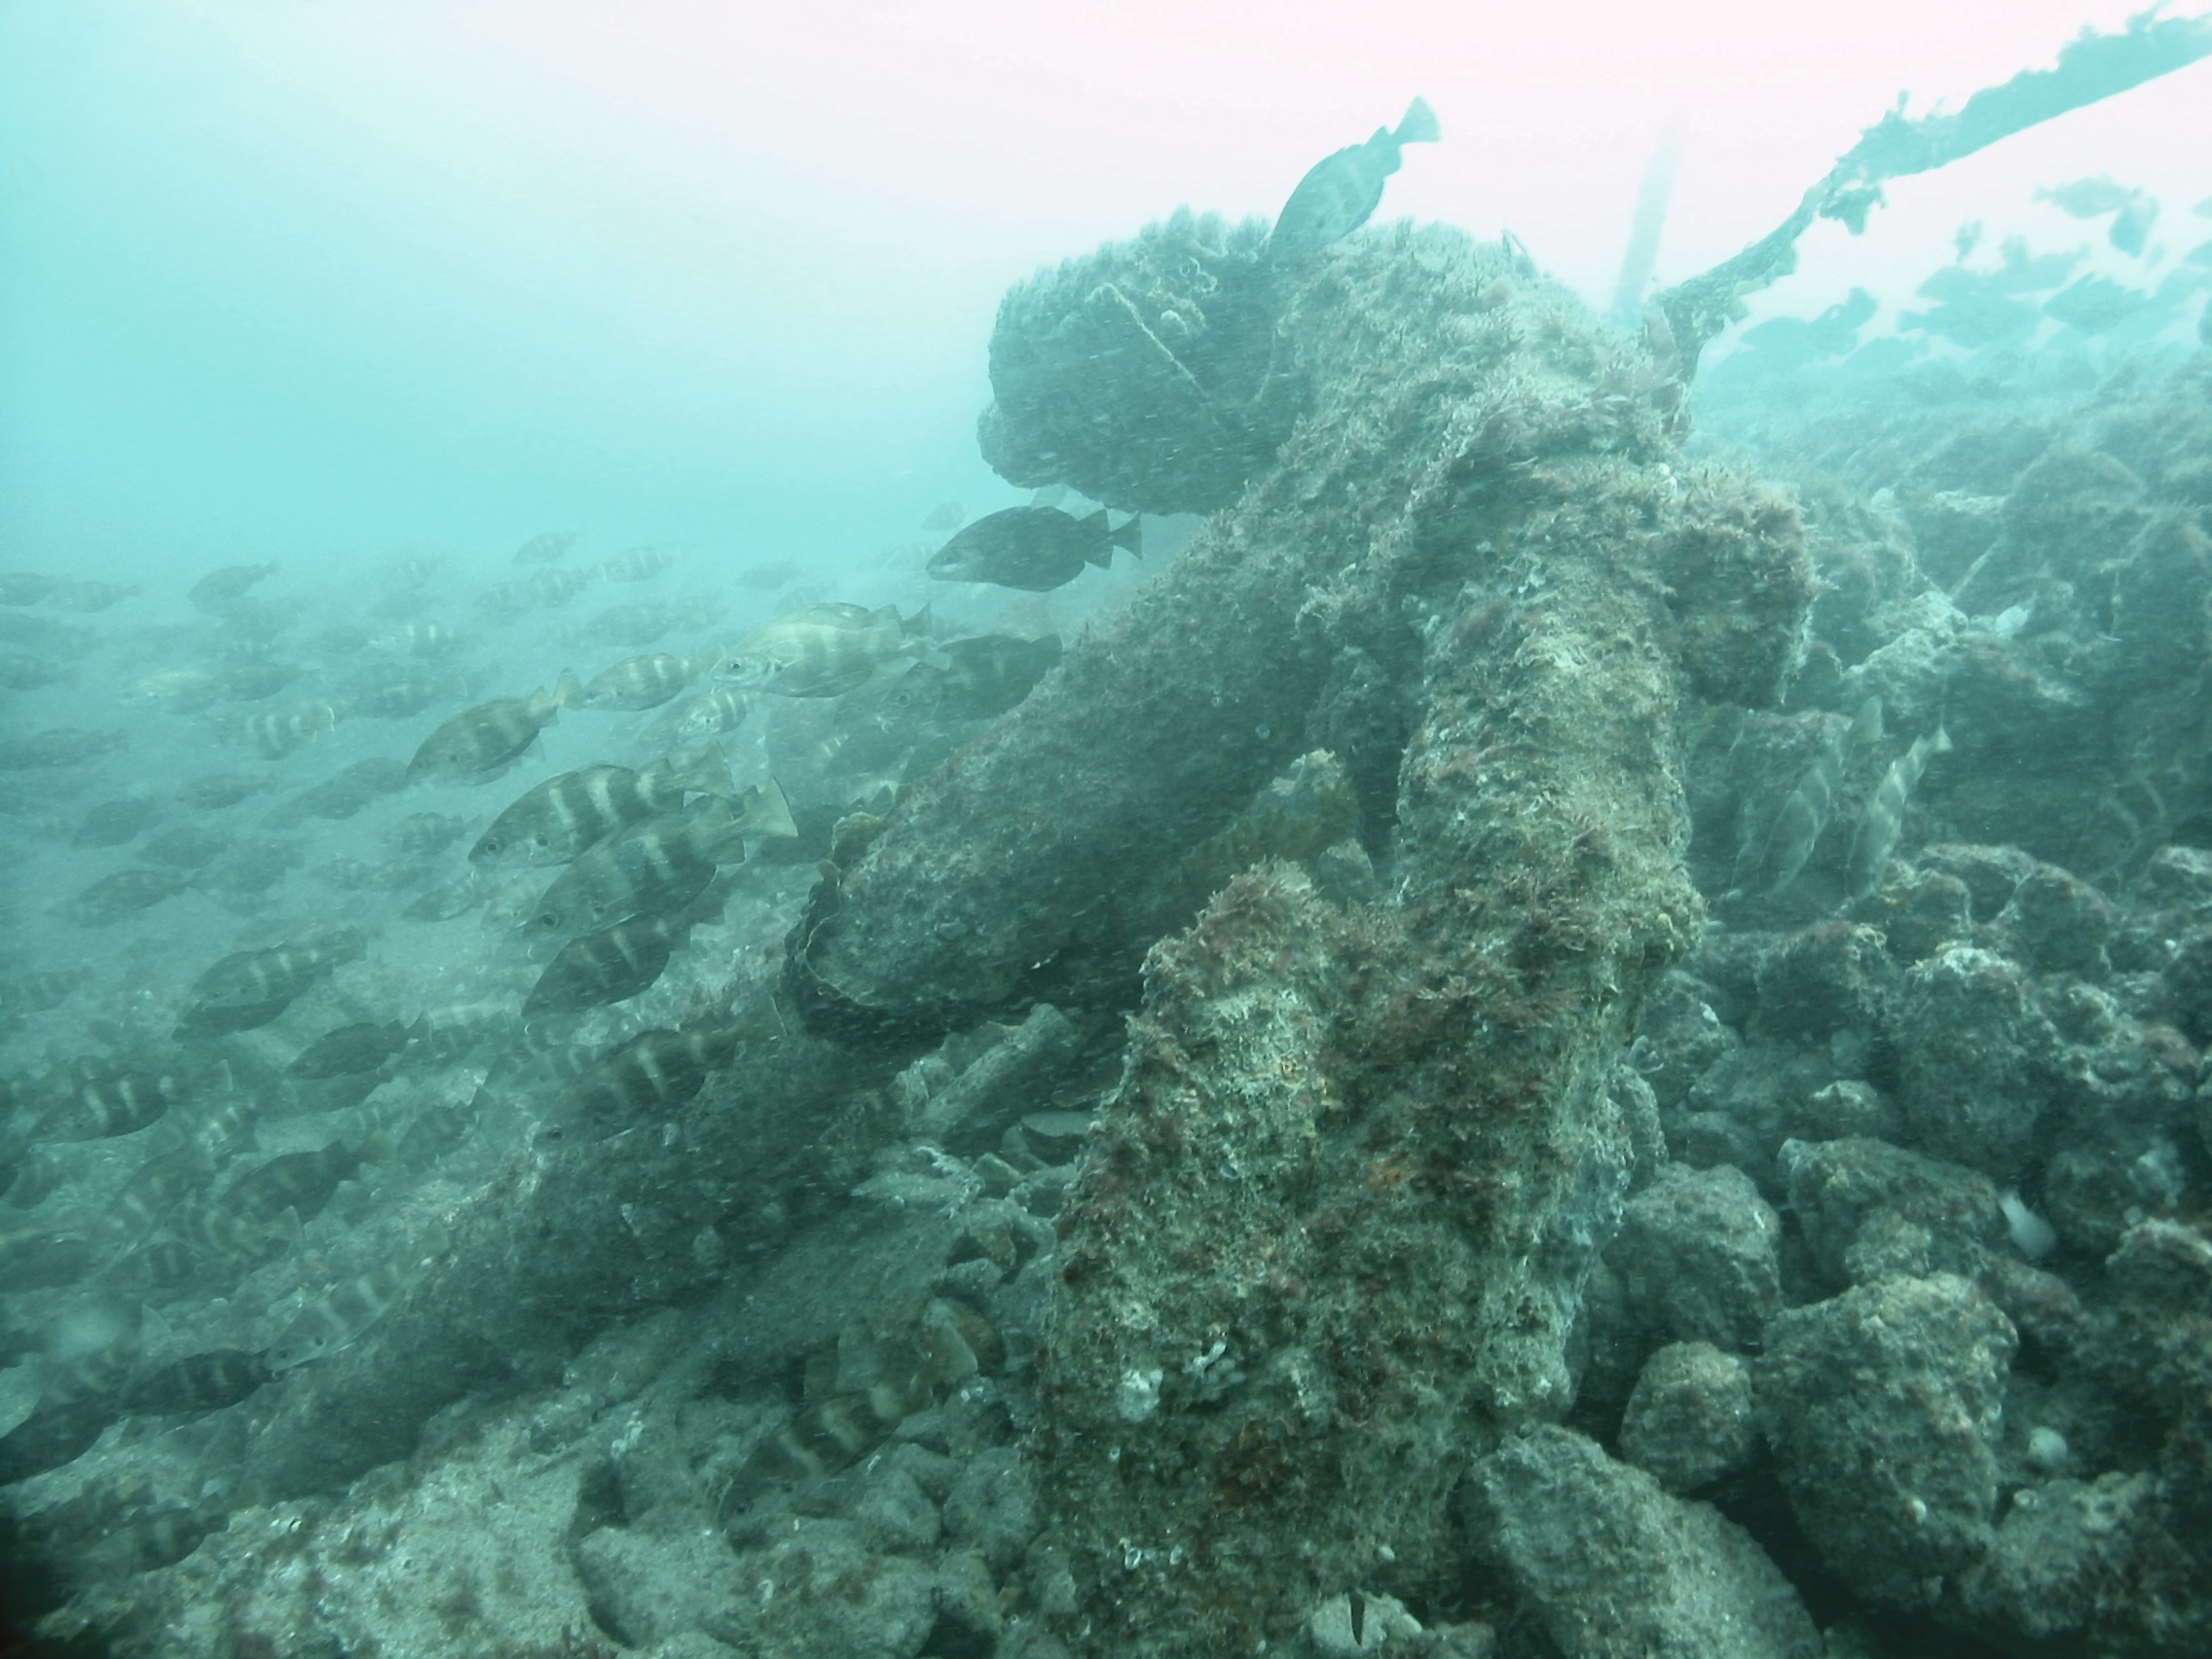 Anchor of the SS Concha